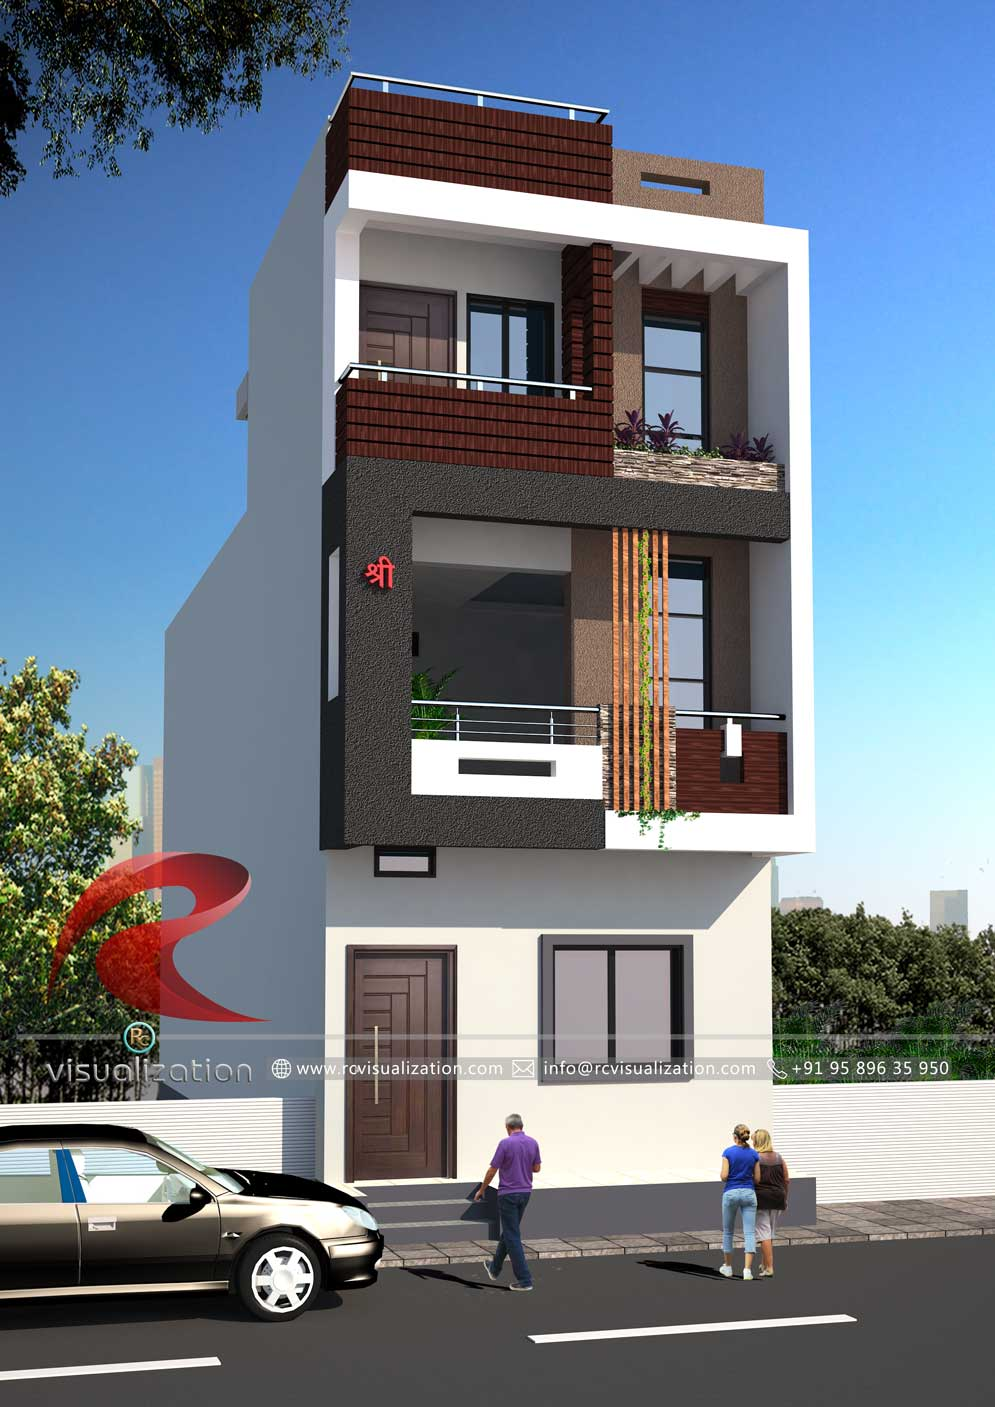 3d Narrow House Designs Gallery Rc Visualization